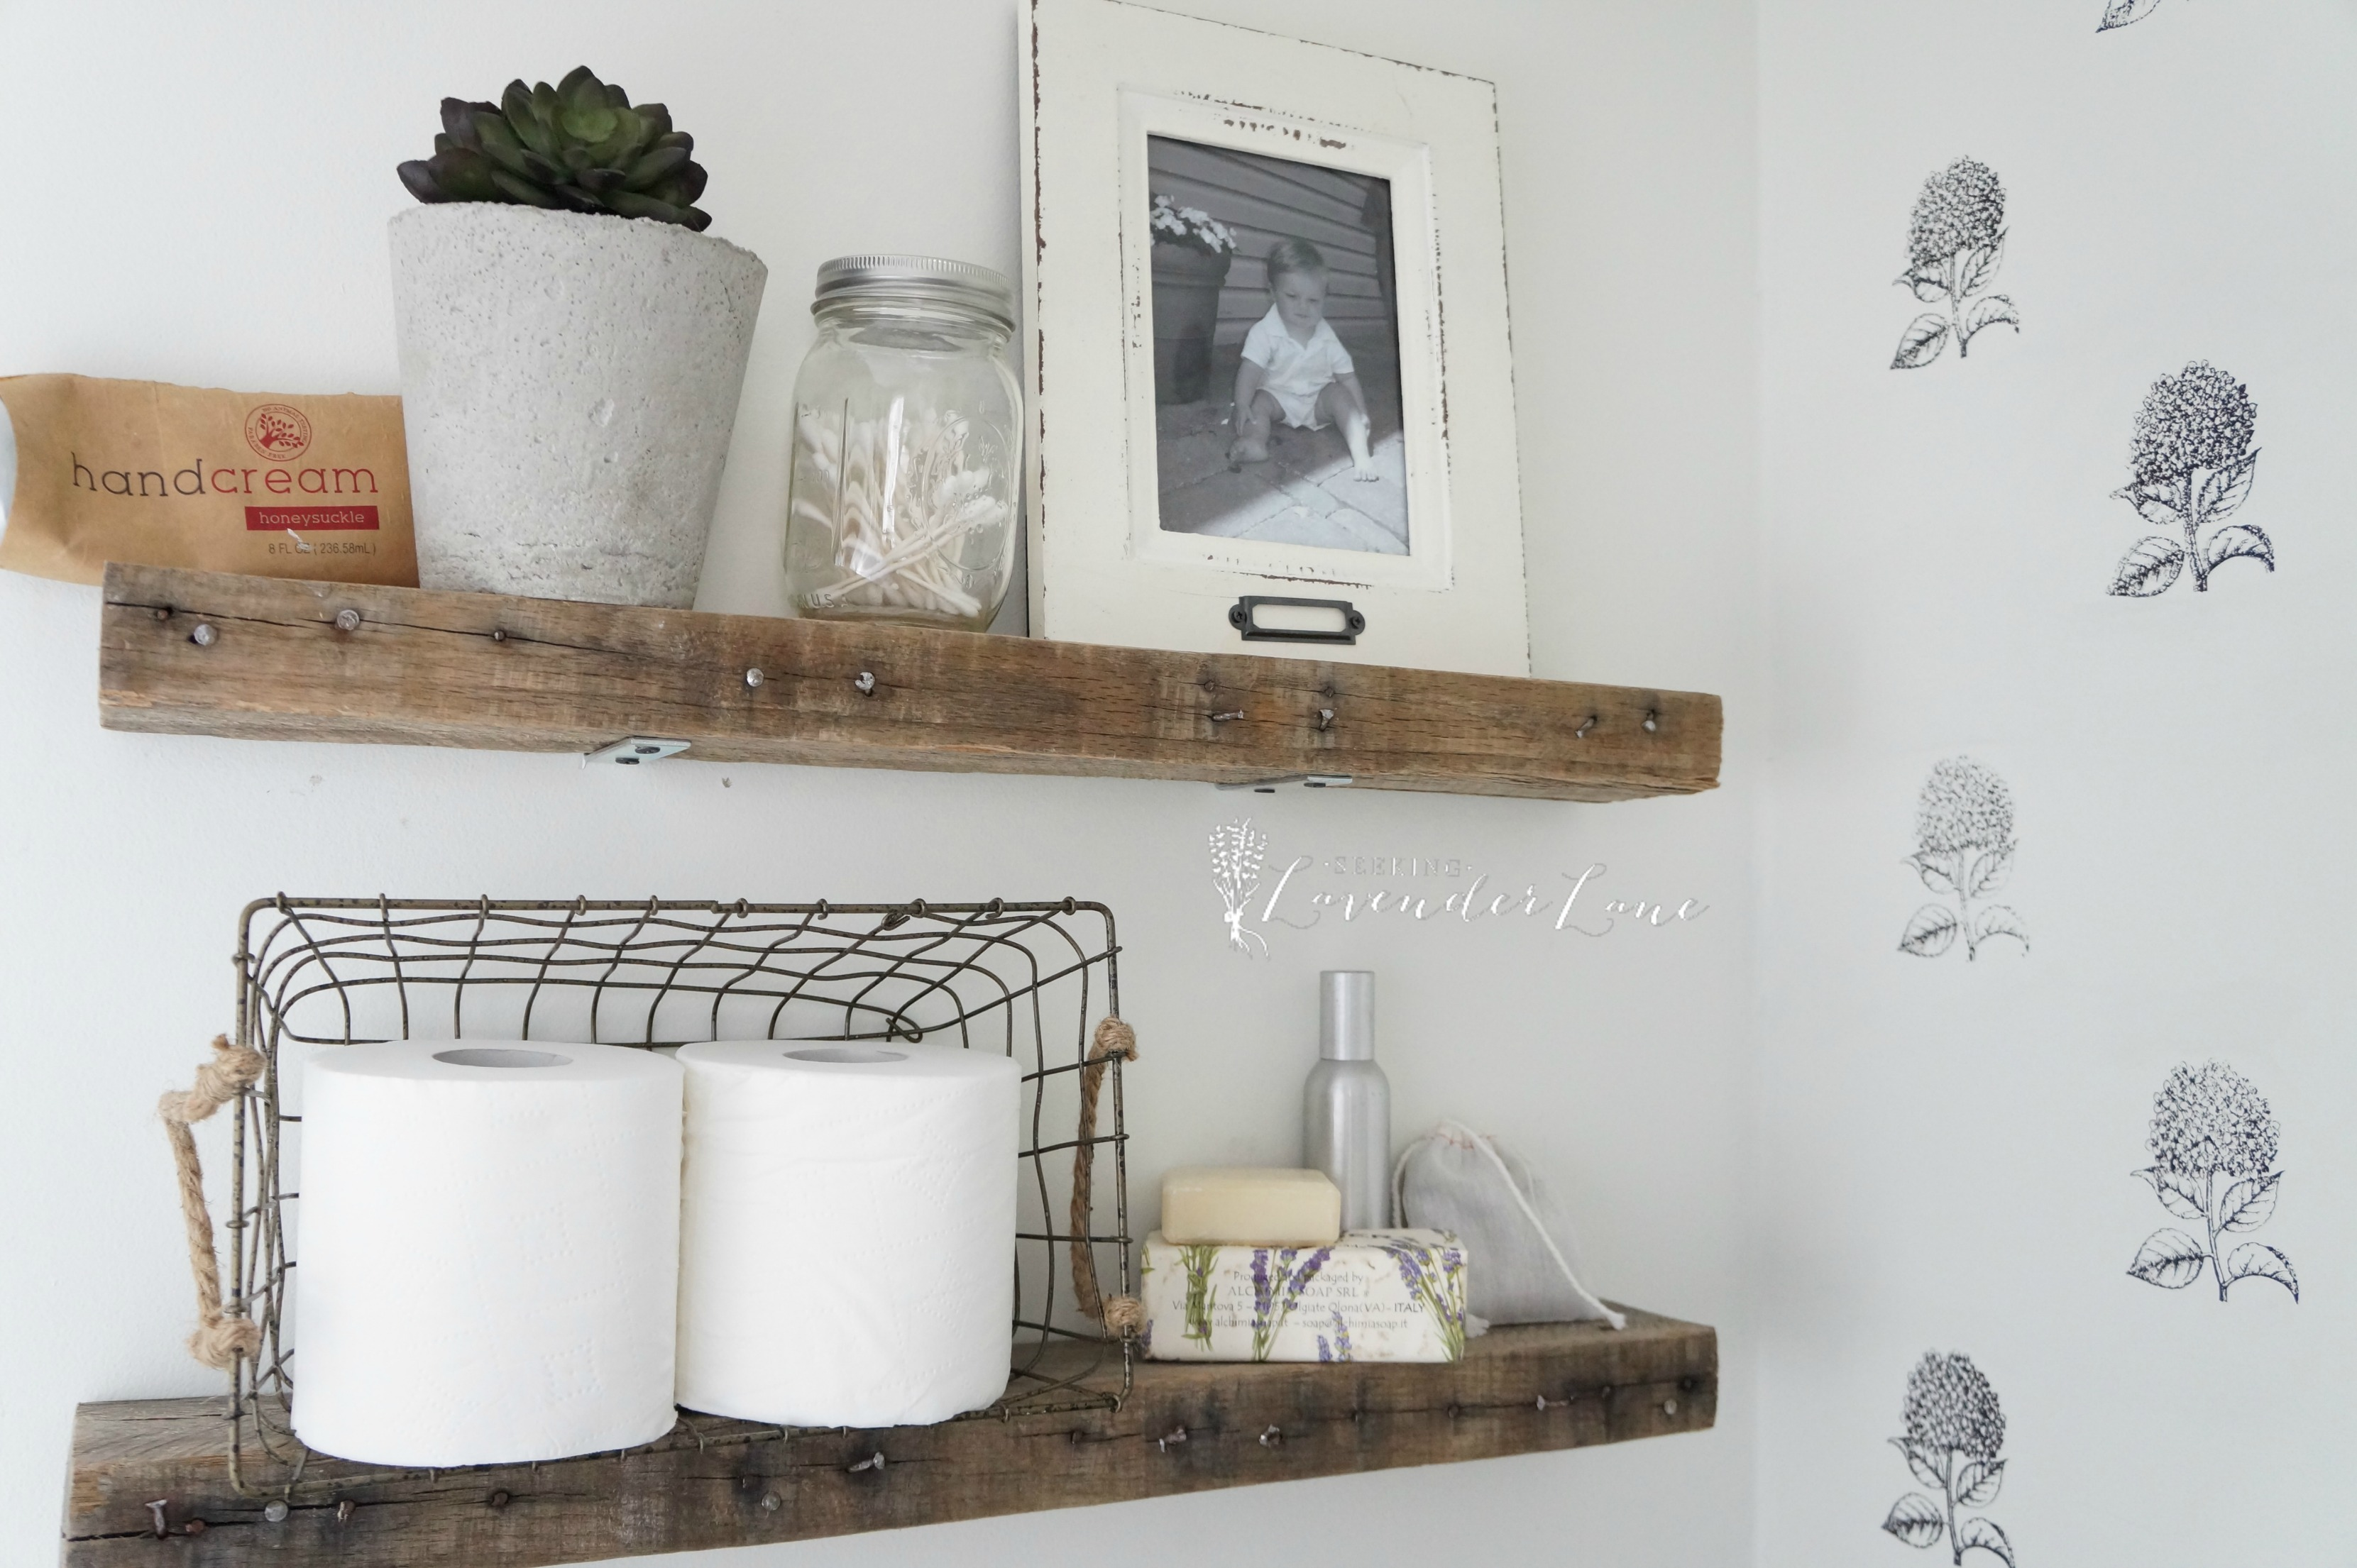 Diy rustic bathroom shelves seeking lavendar lane for Bathroom shelves design